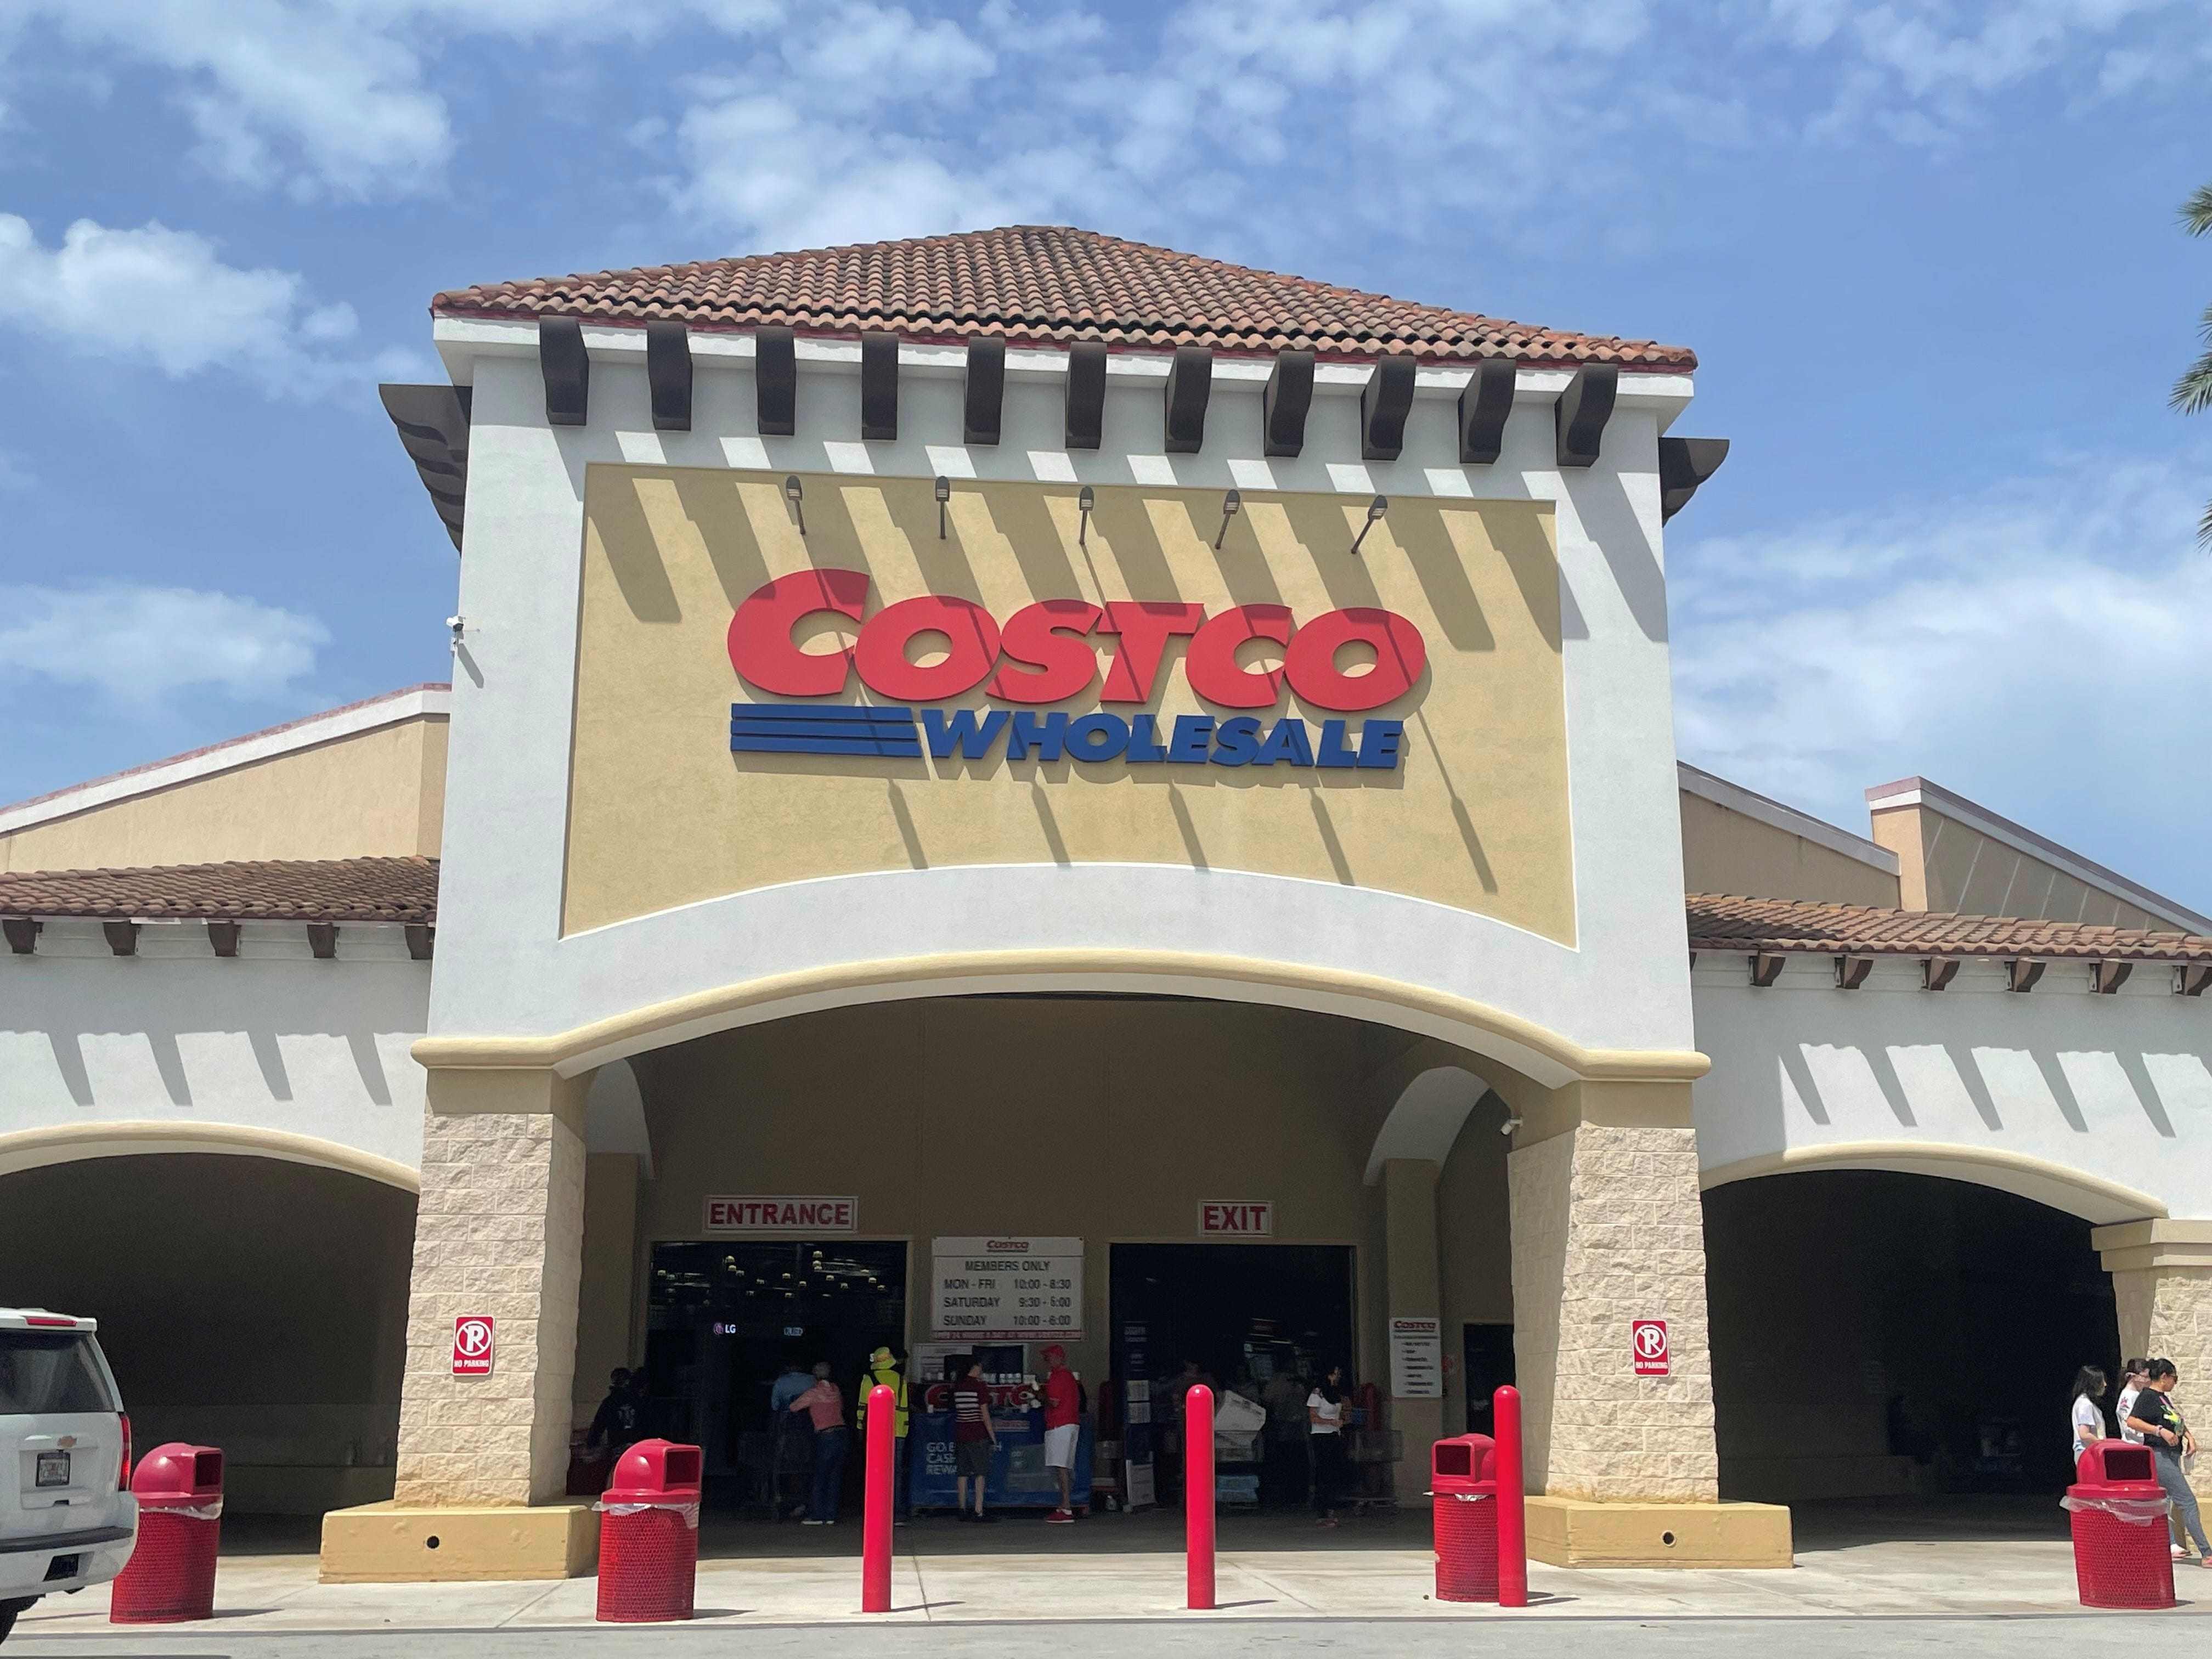 Costco reverses course and will keep senior hours as COVID-19 cases increase nationwide